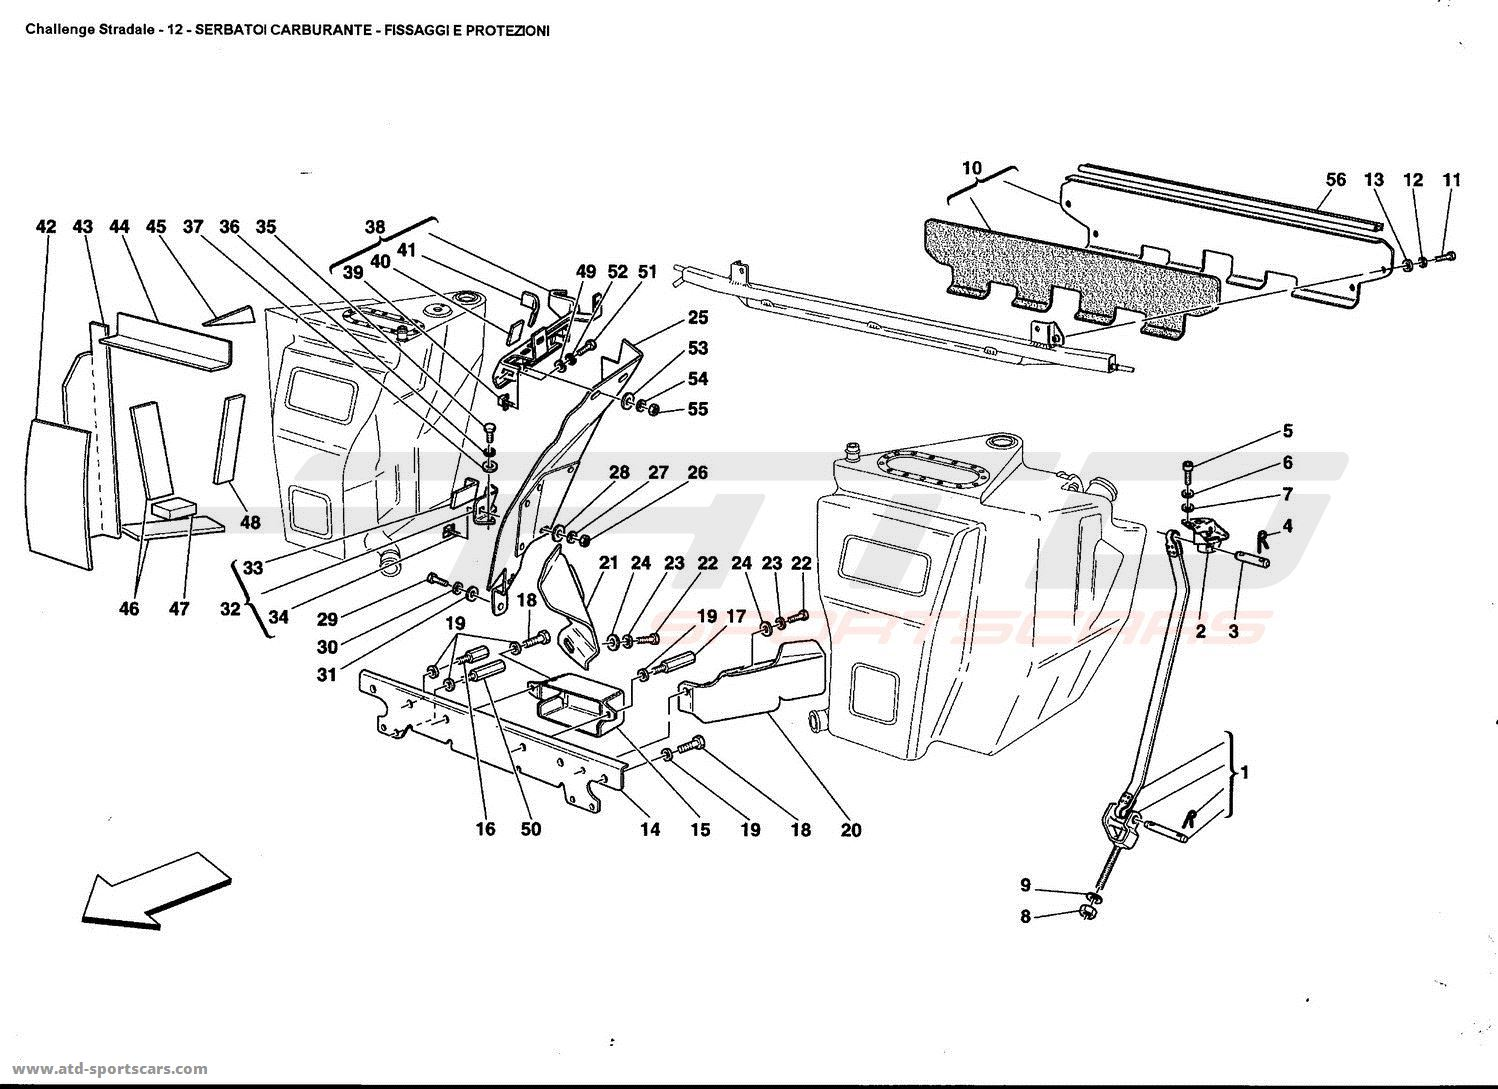 Ferrari 360 Challenge Stradale Air Intake Fuel Parts At Atd Wiring Diagrams 5 Tanks Fixing And Protection